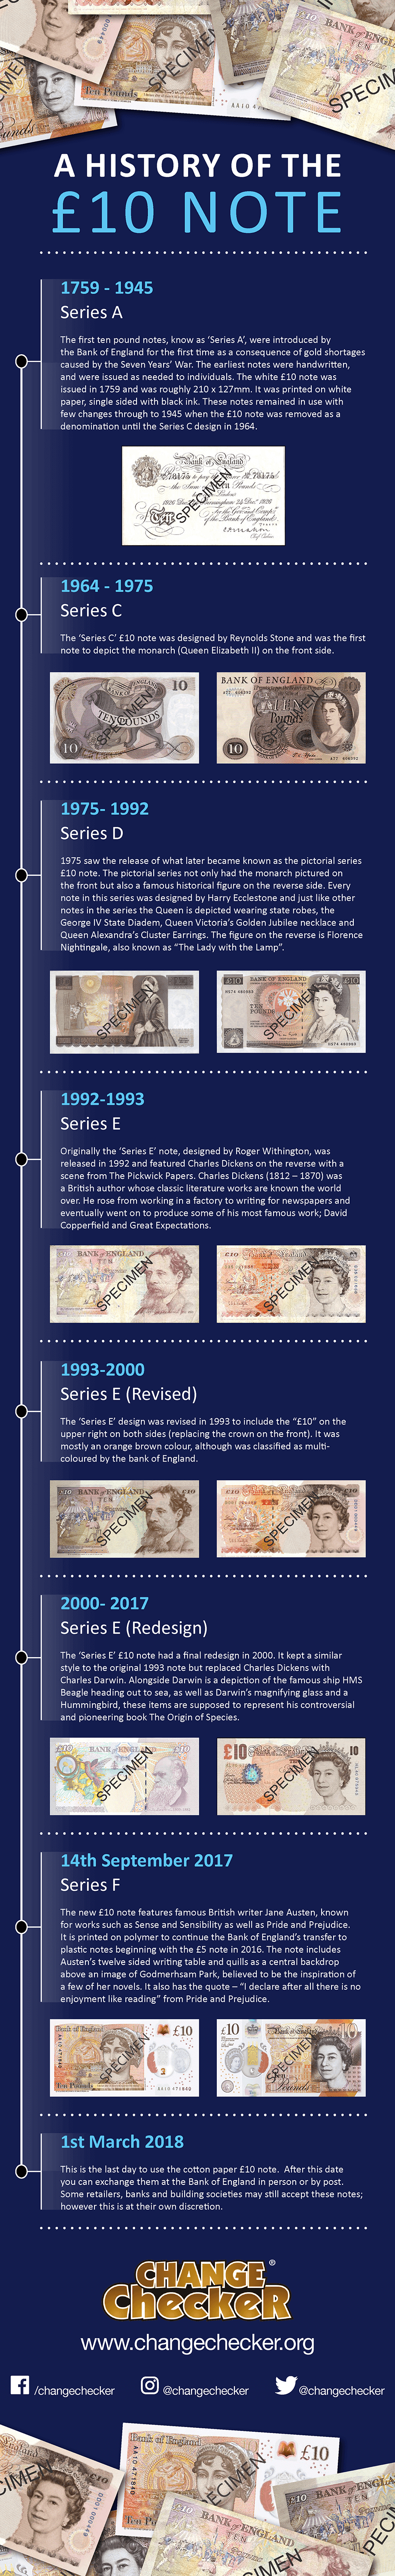 10 Pound Note Infographic Final - A history of the £10 note...